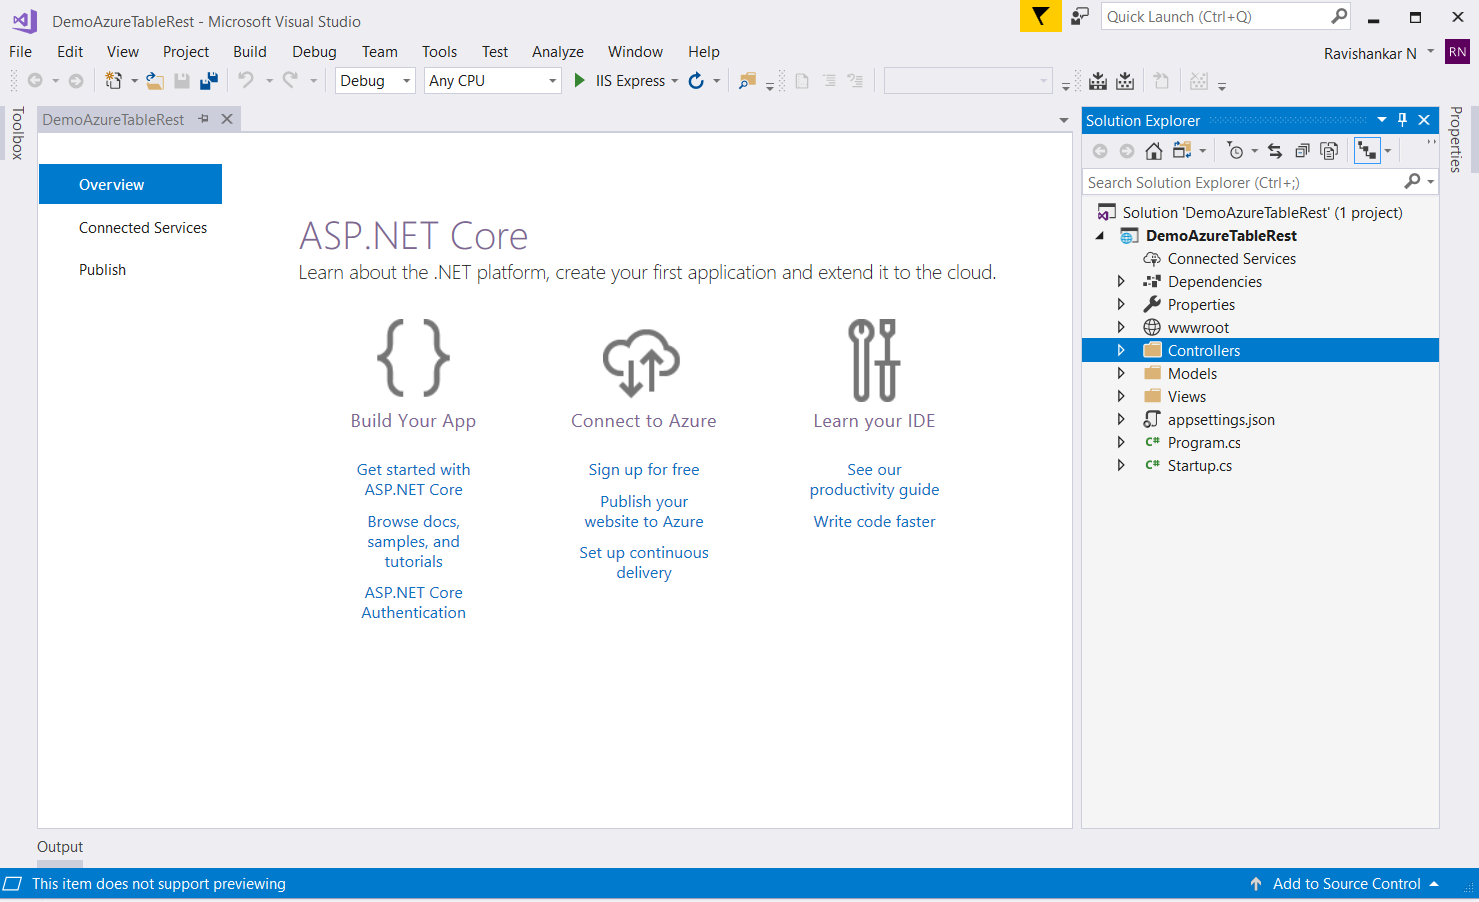 How To Access Data From Azure Table Storage Using Rest API in ASP.NET Core